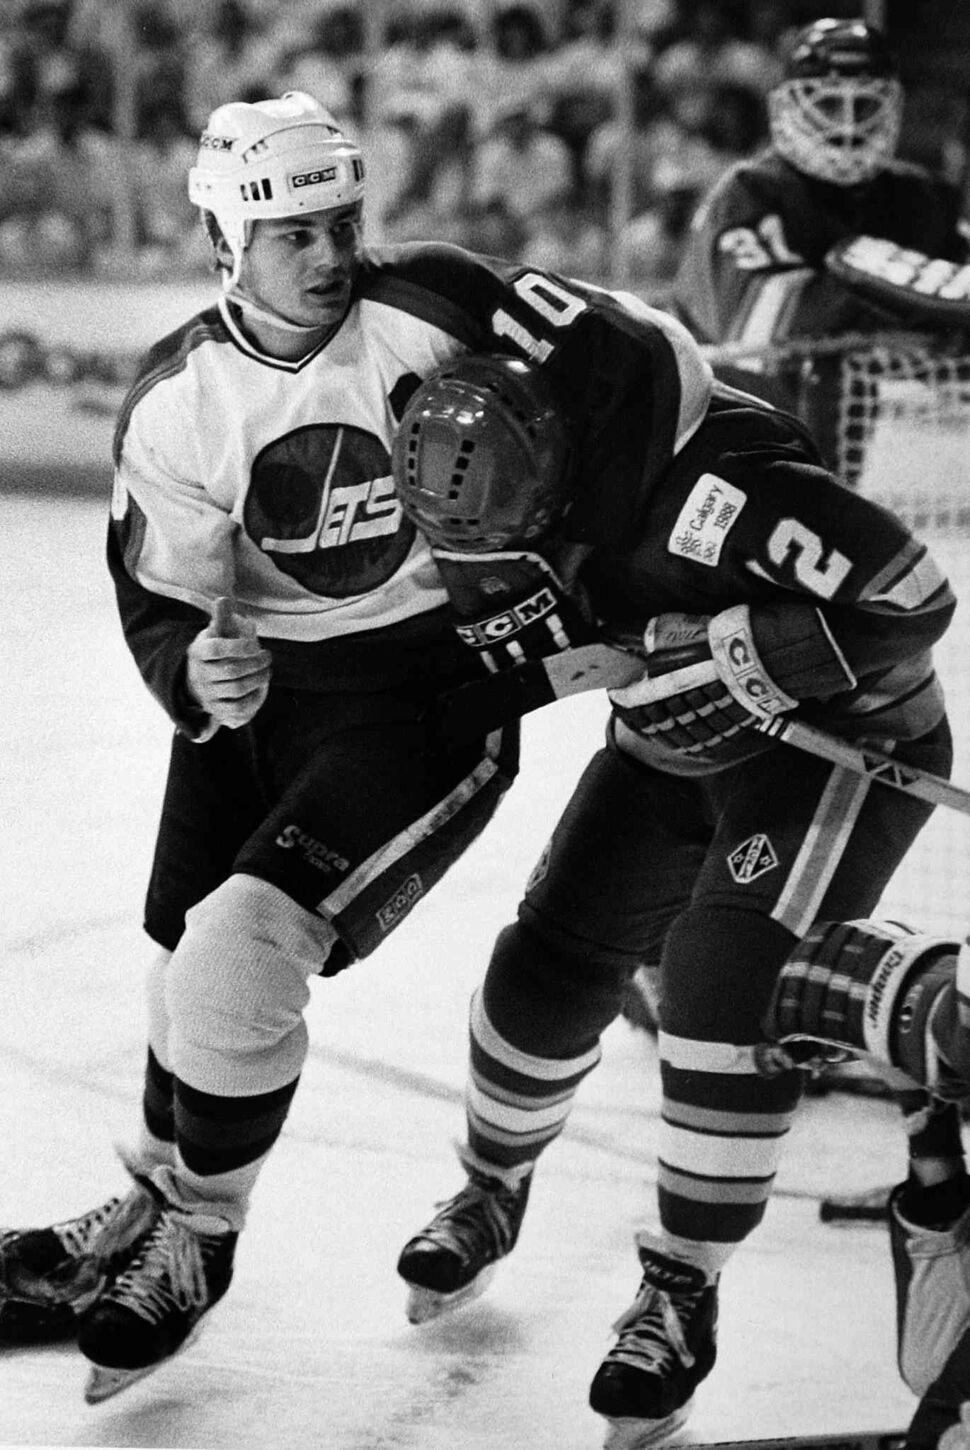 Hawerchuk grabs Calgary Flames forward Haken Loob with Flames goalie Rejean Lemelin looking on in a game on May 17, 1990. (Winnipeg Free Press files)